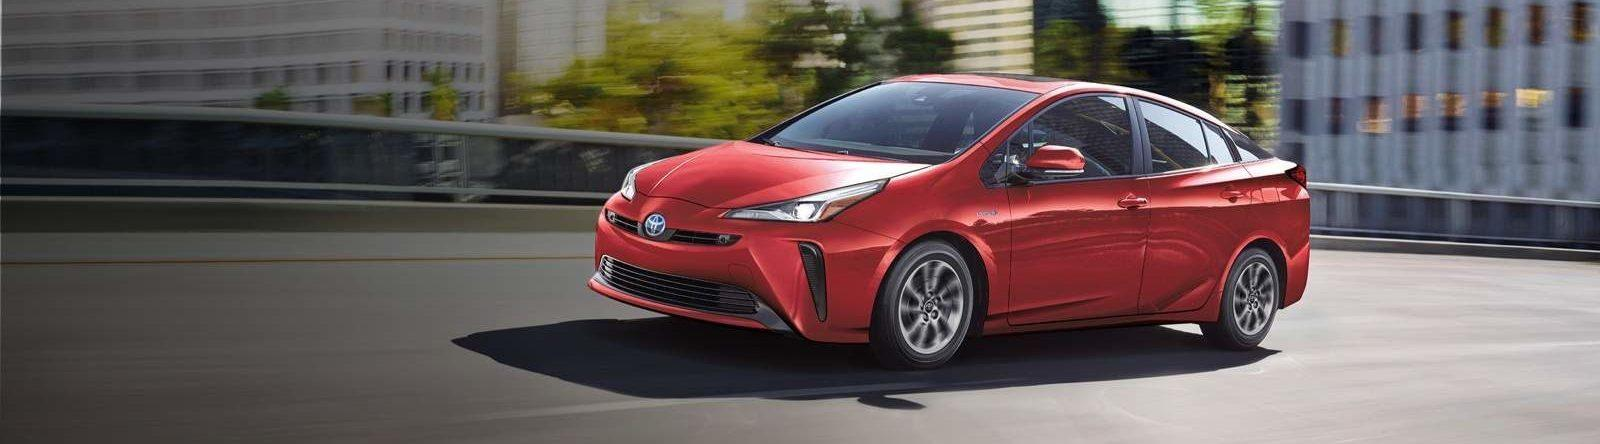 Side front view of 2021 Toyota Prius Technology in supersonic red driving on a city road